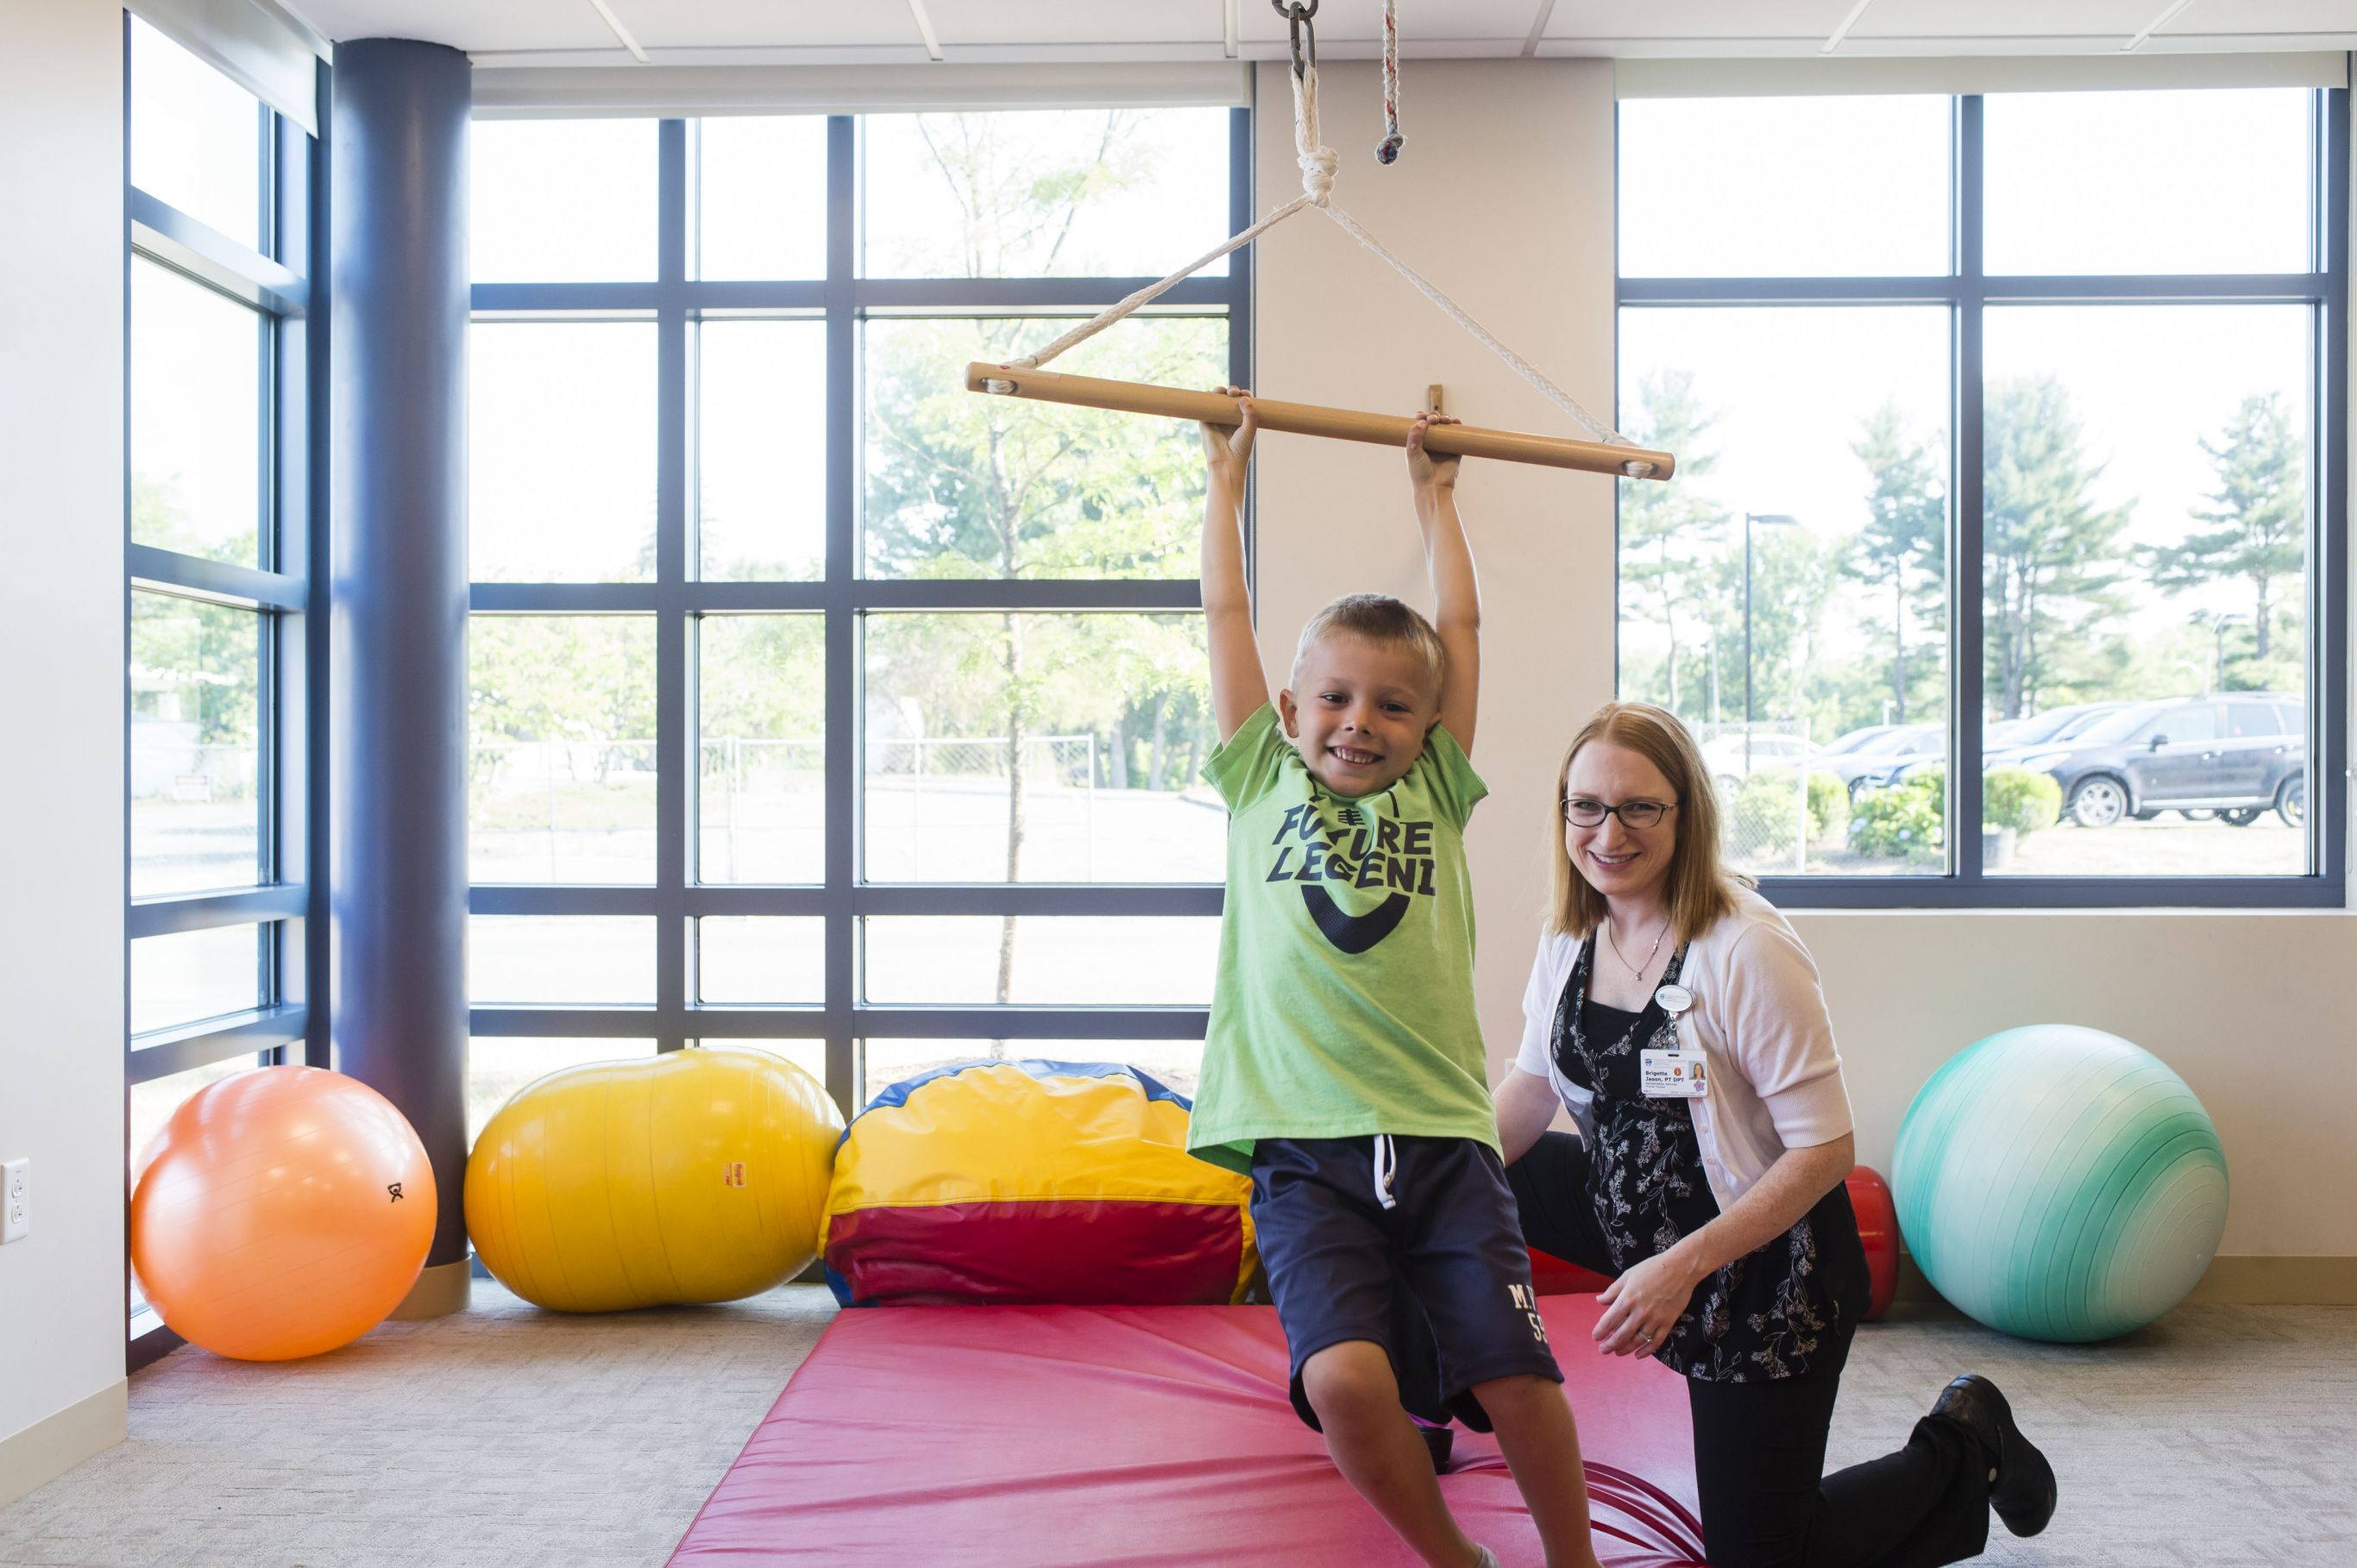 Physical therapist works with young patient at Cooley Dickinson Rehabilitation Services, Northampton, MA 01060.